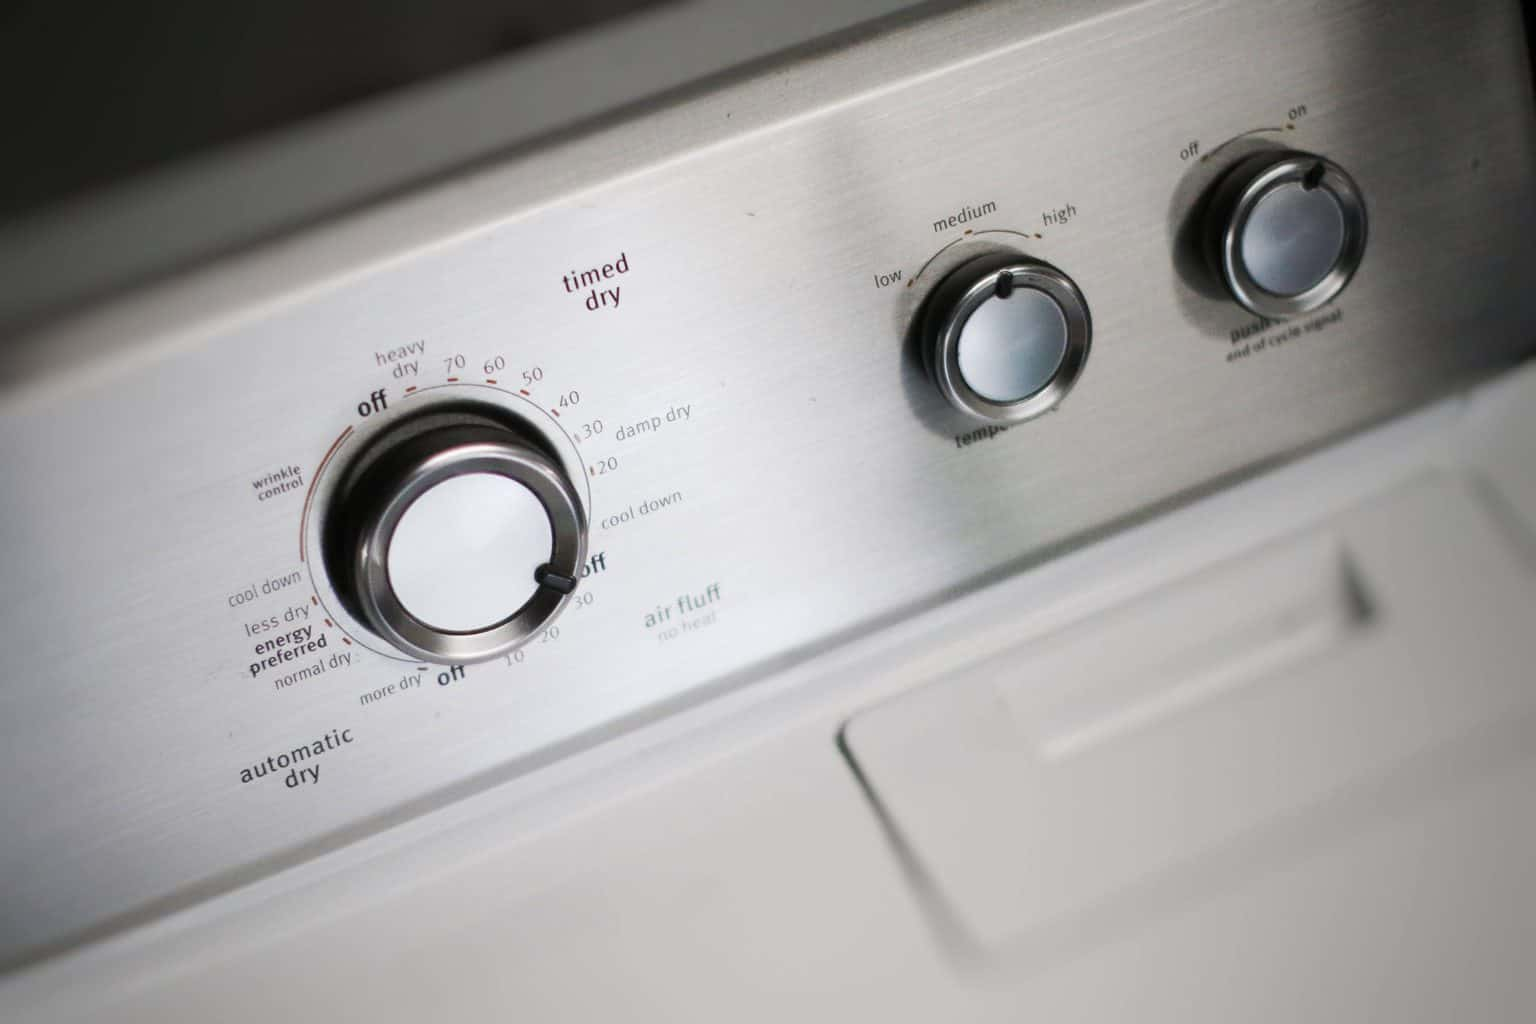 dryer home appliance